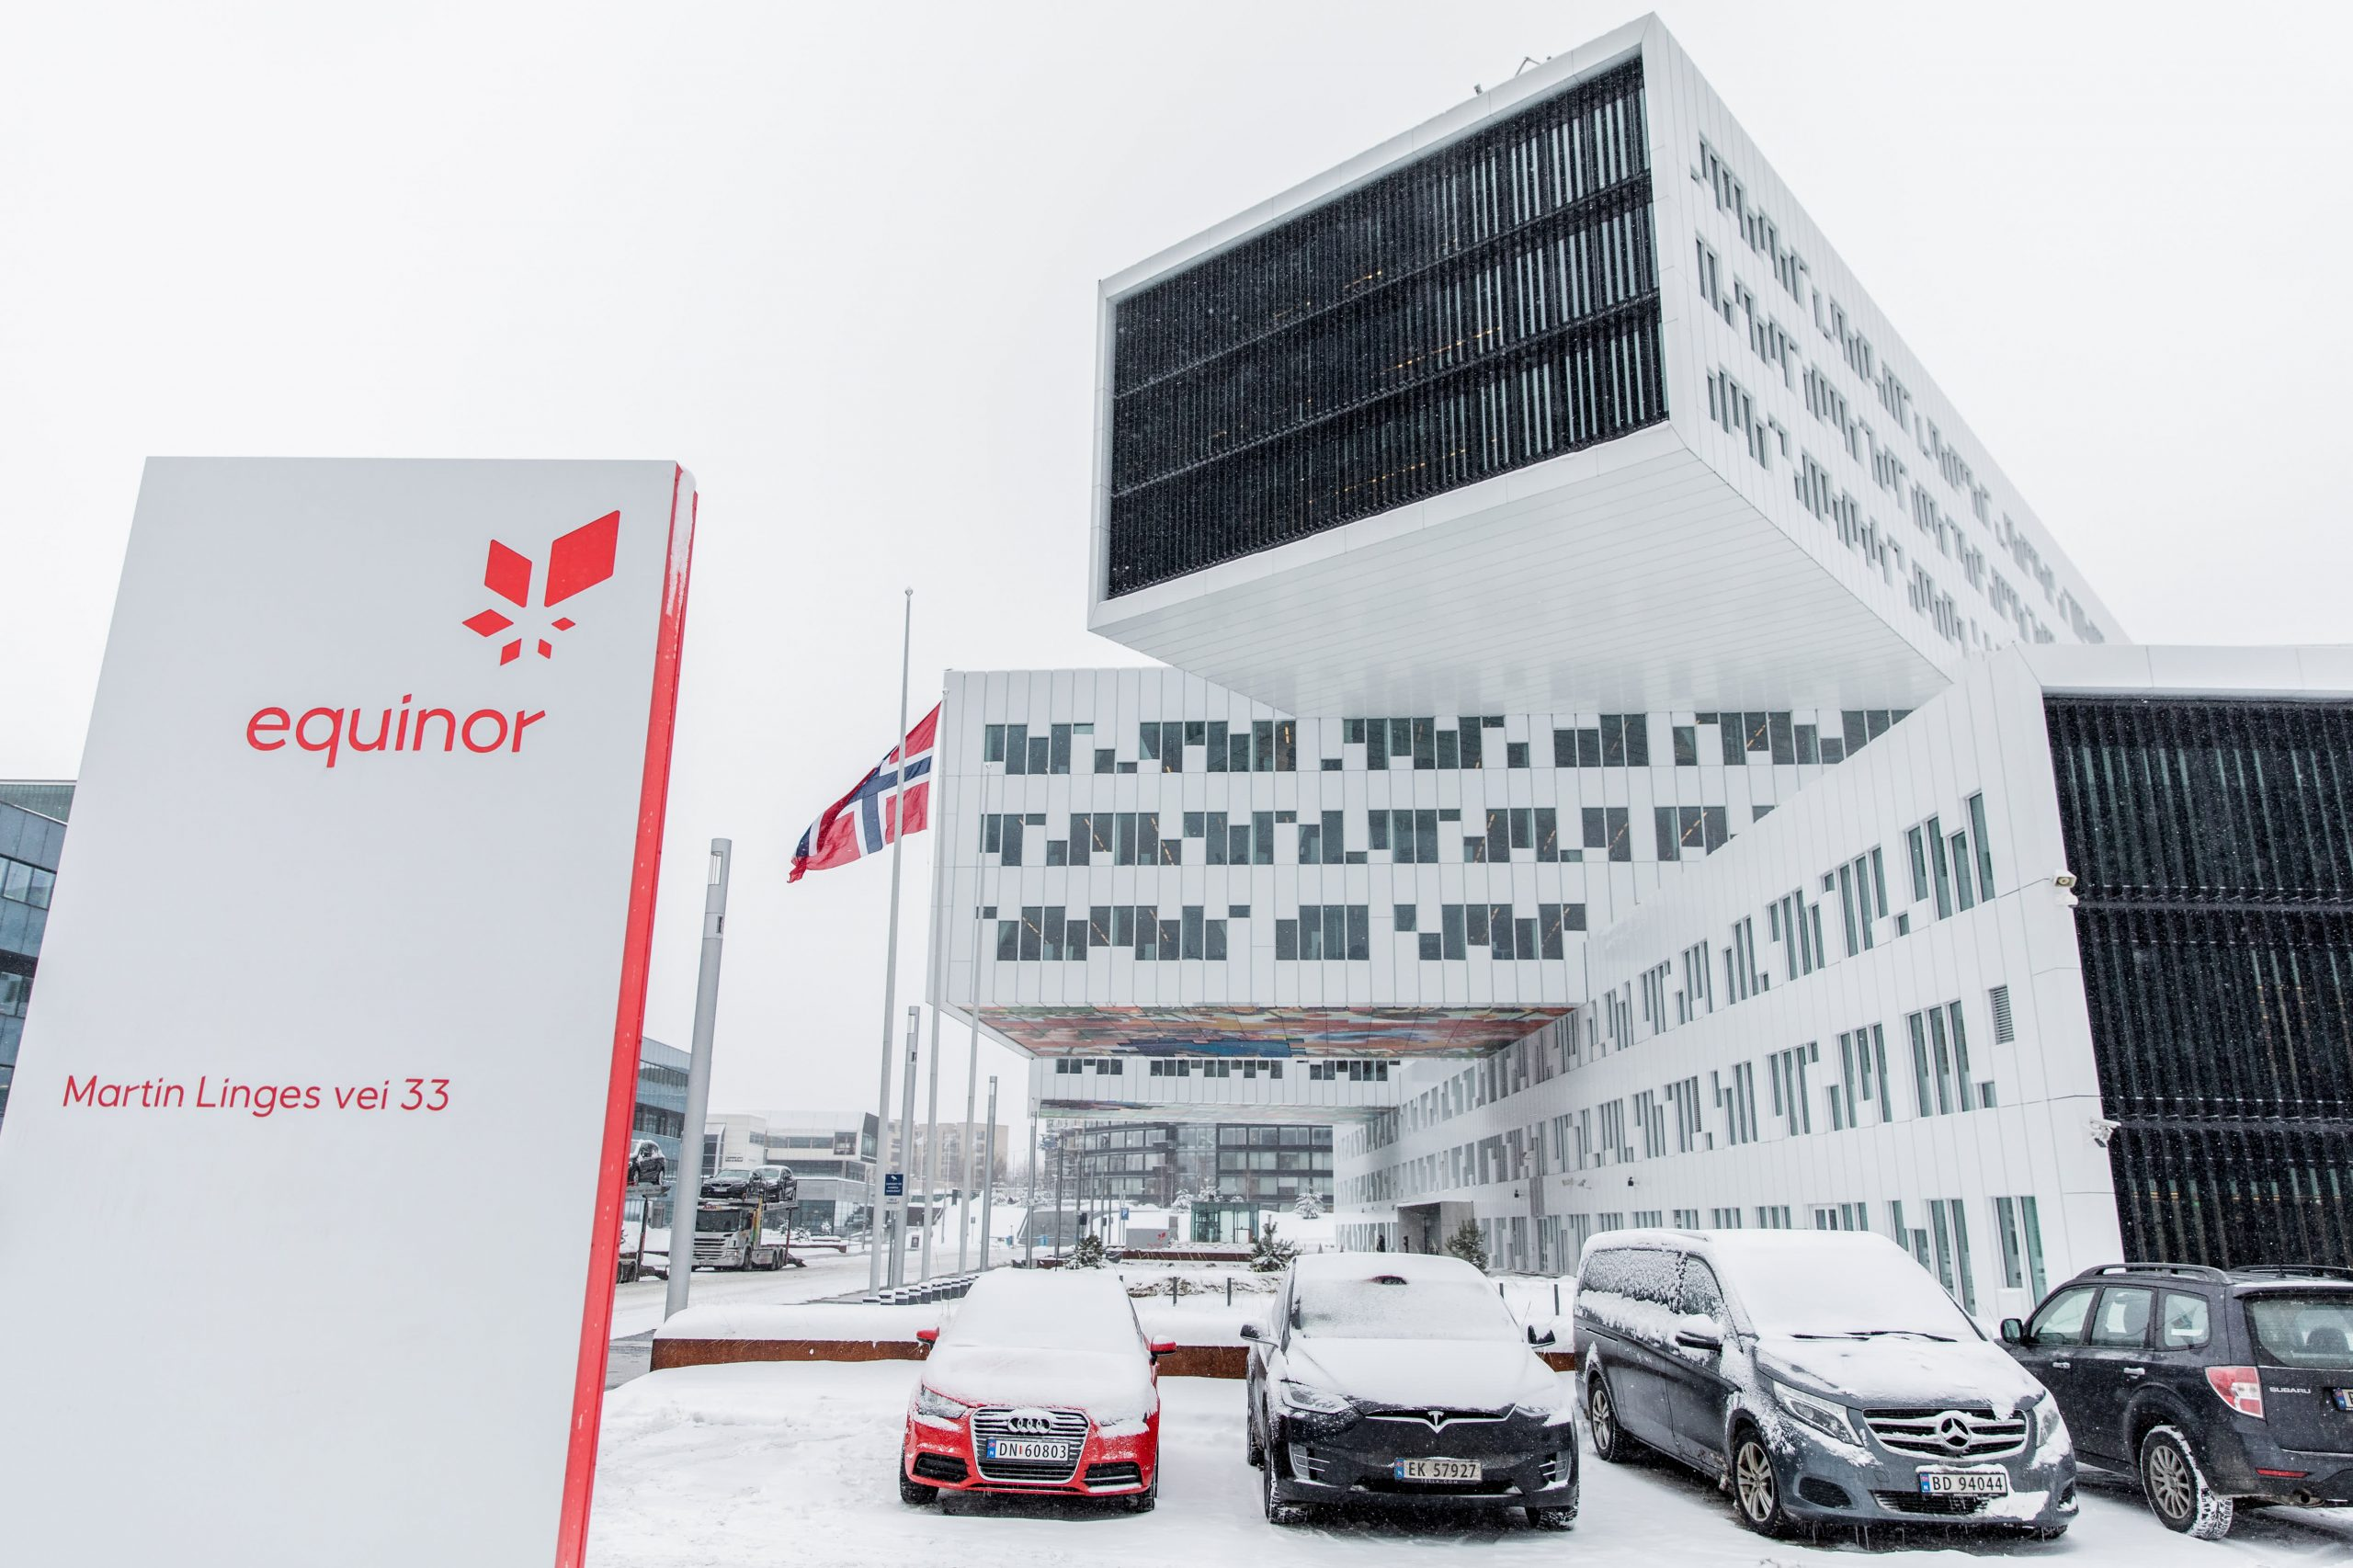 Equinor enters into a huge renewable energy contract in the United States